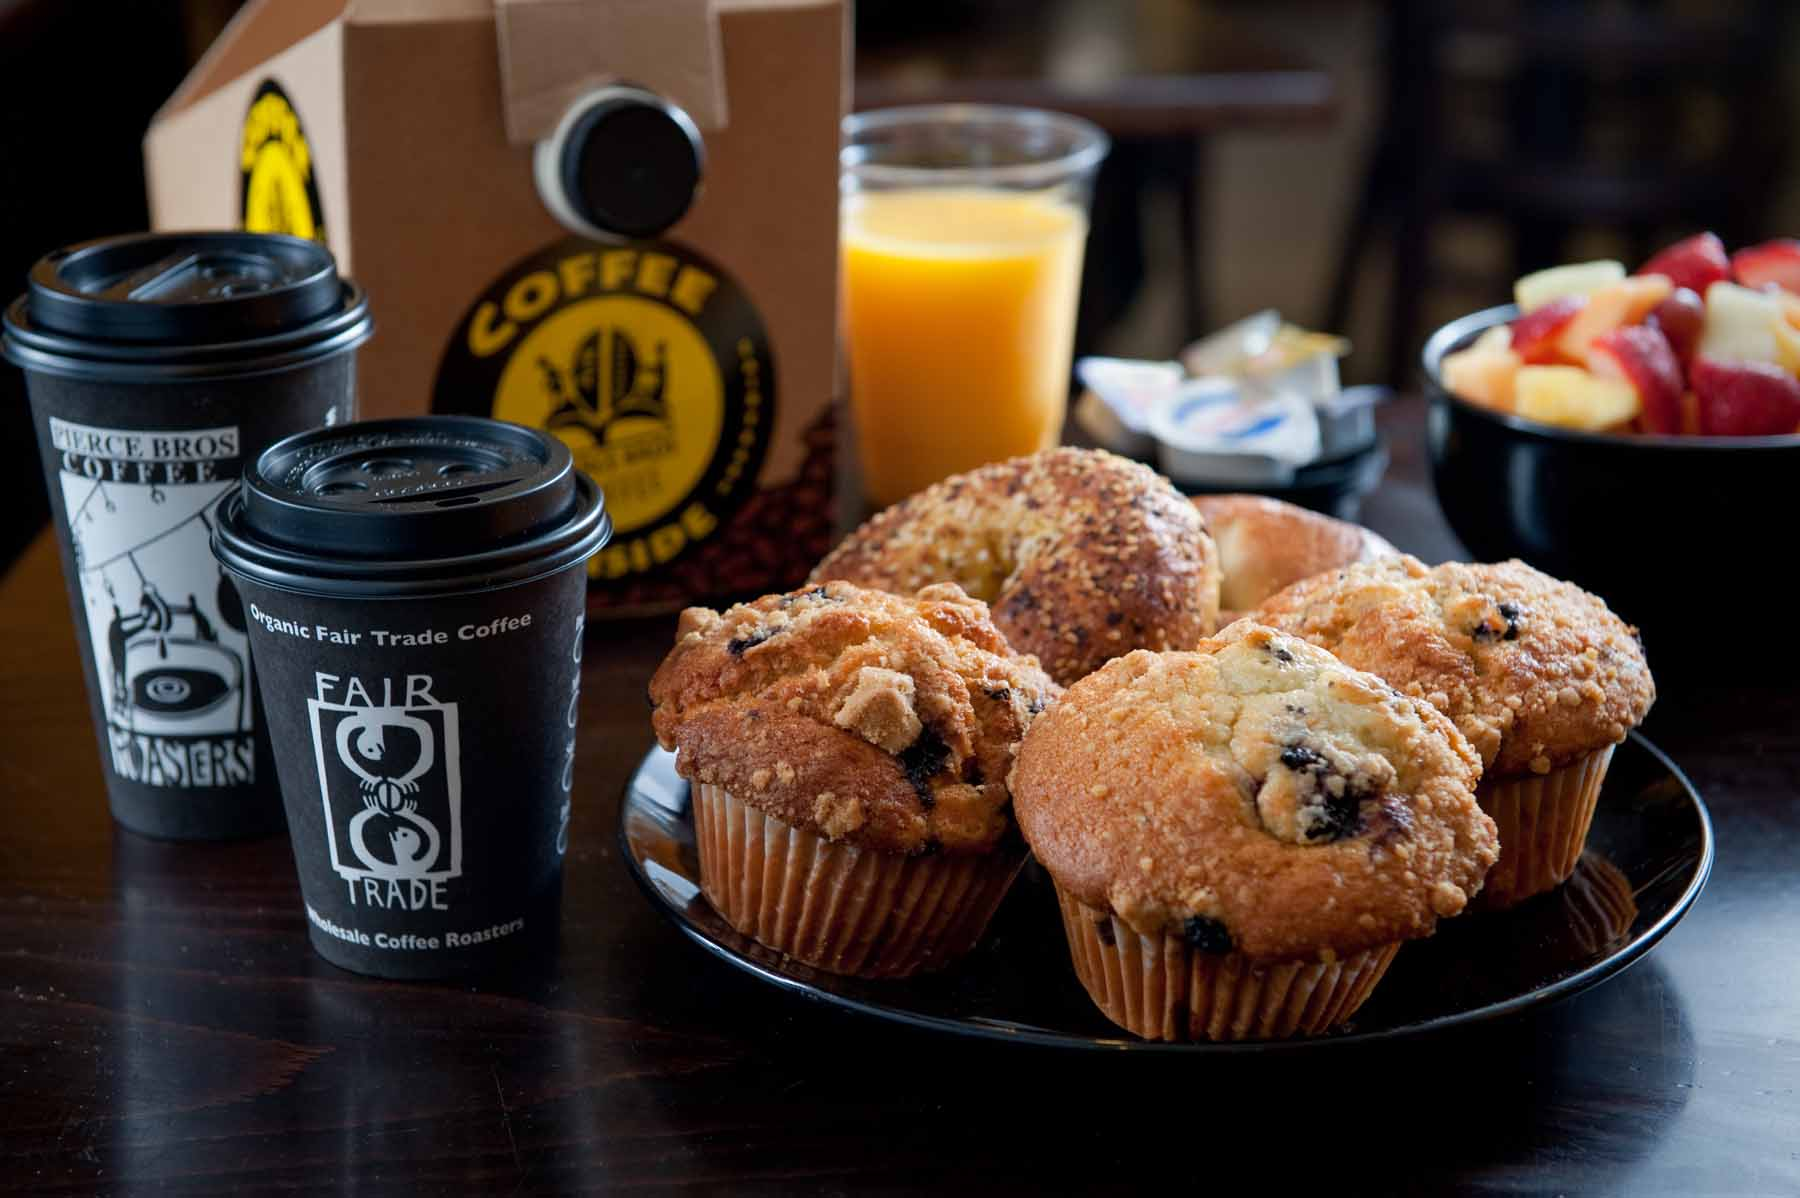 muffins, juice and coffee